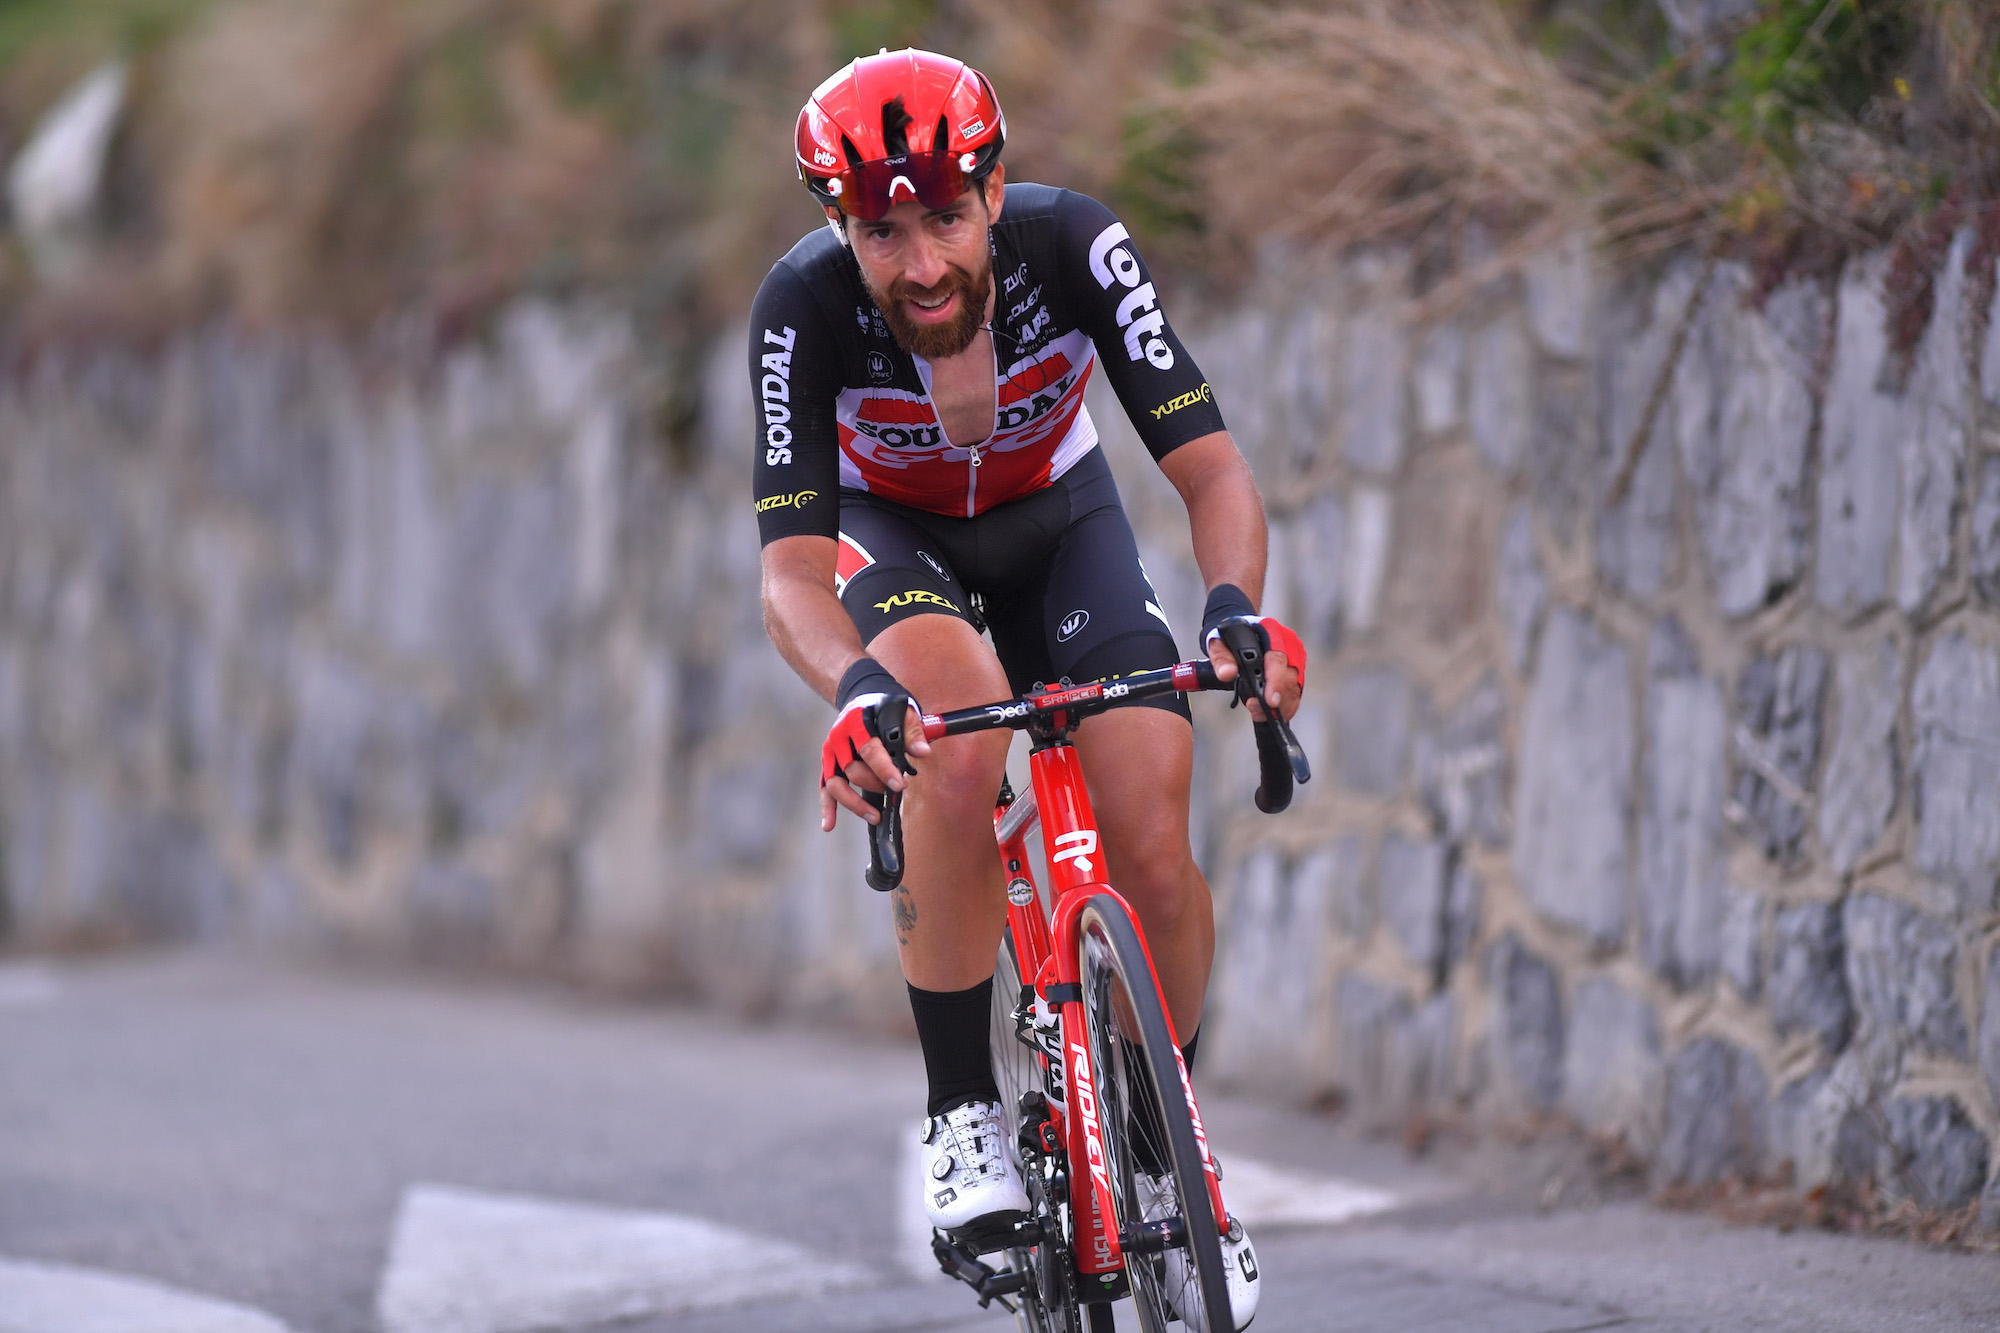 Thomas De Gendt and Tim Wellens set new Strava KoM on Vall d'Ebo during training race